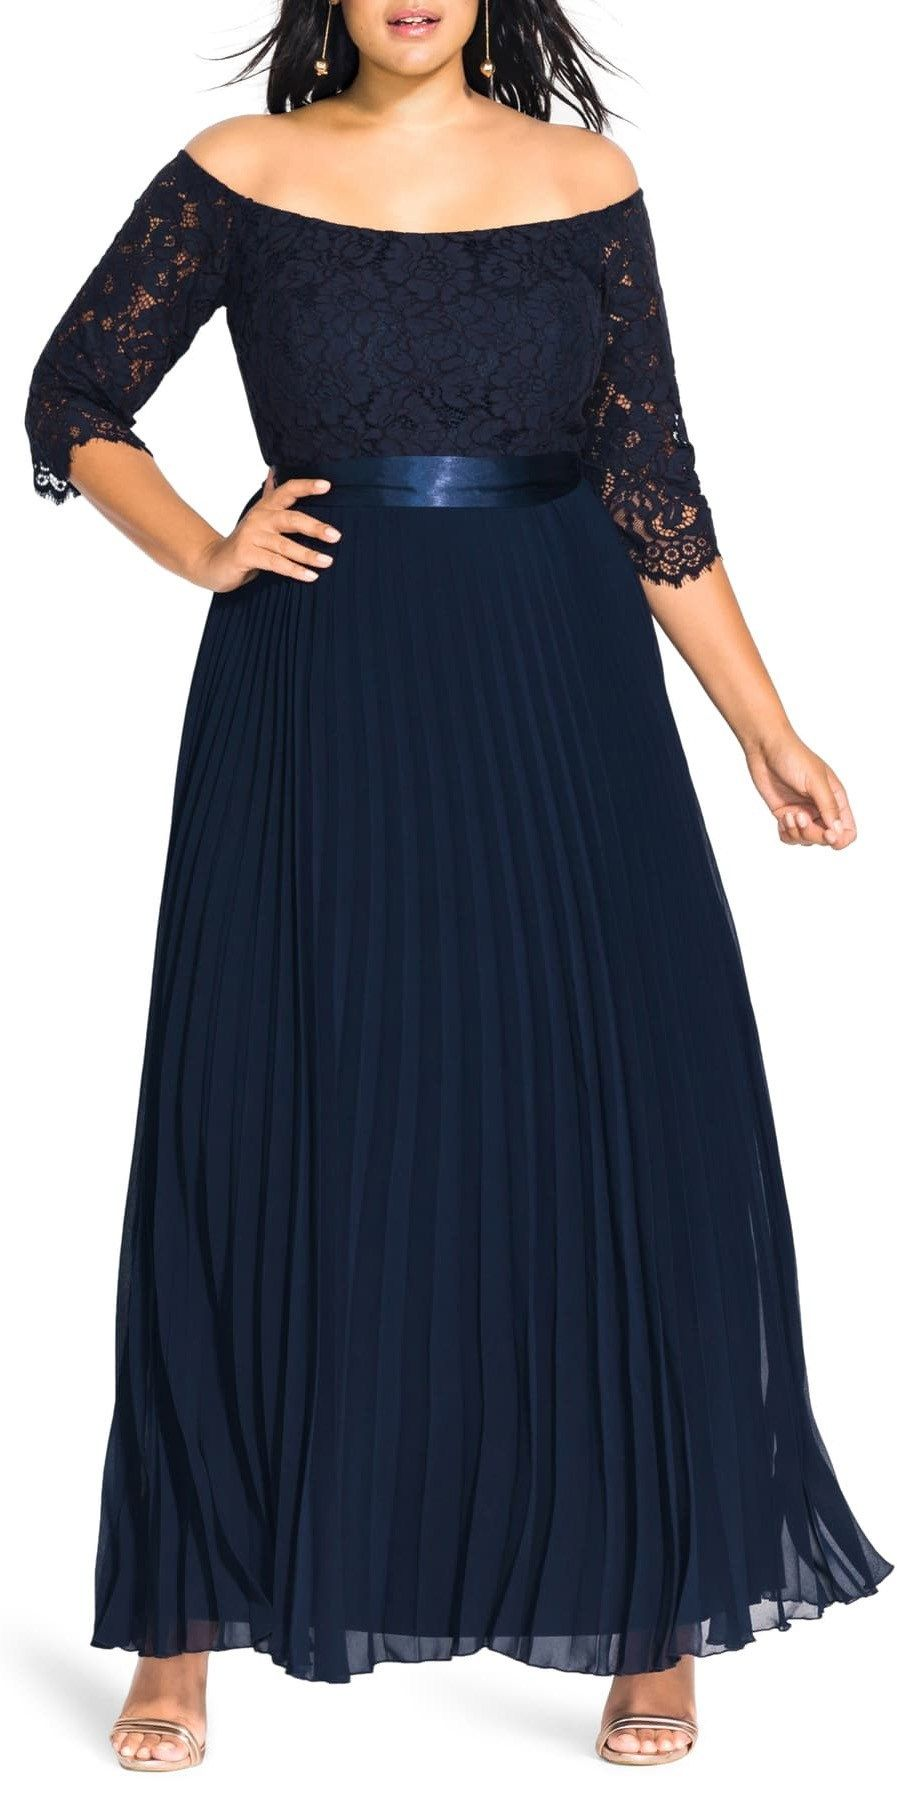 57 Plus Size Wedding Guest Dresses With Sleeves Alexa Webb Plus Size Maxi Dresses Plus Size Dresses Plus Size Wedding Guest Dresses,Open Back Stella York Wedding Dresses